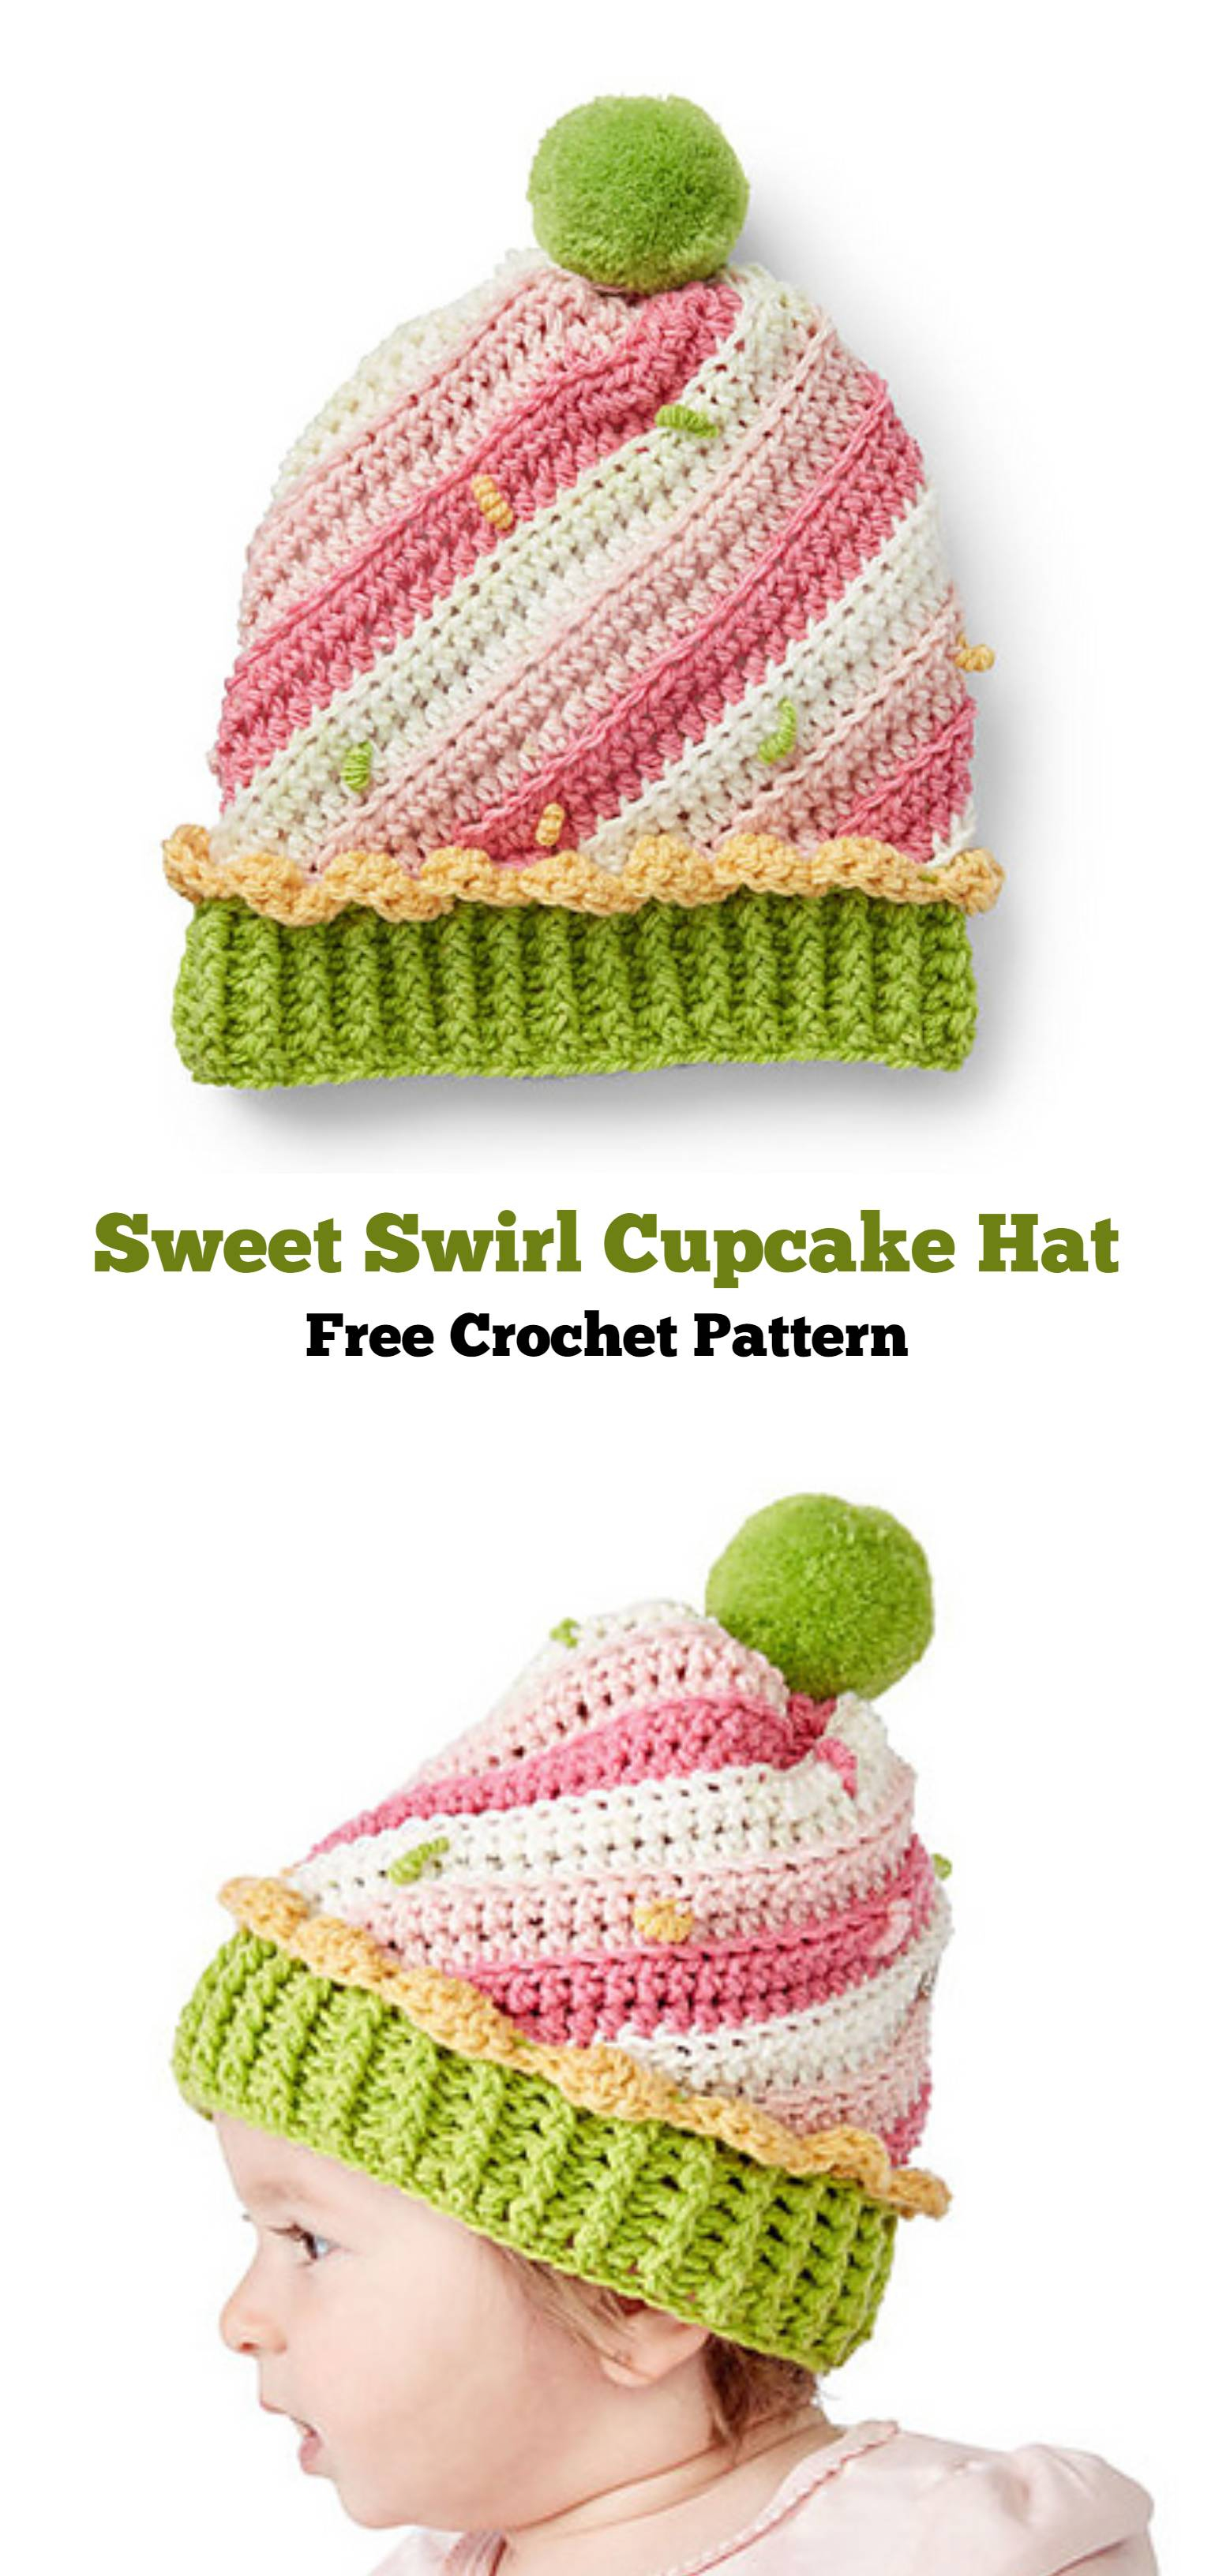 Knitted Cupcake Hat Pattern Sweet Swirl Crochet Cupcake Hat